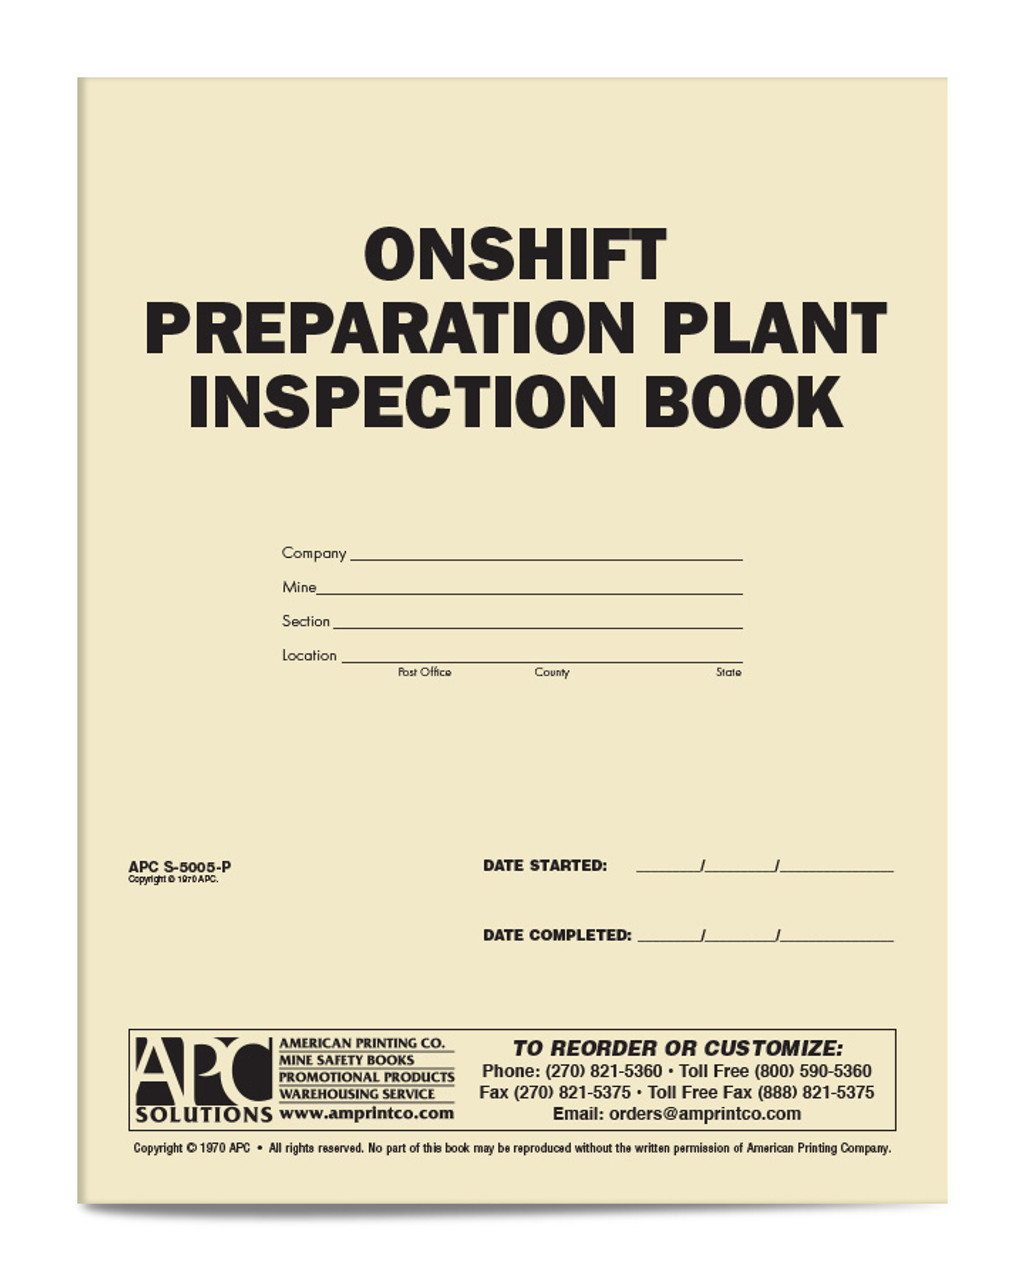 APC S-5005-P: On-Shift Preparation Plant Inspection Book